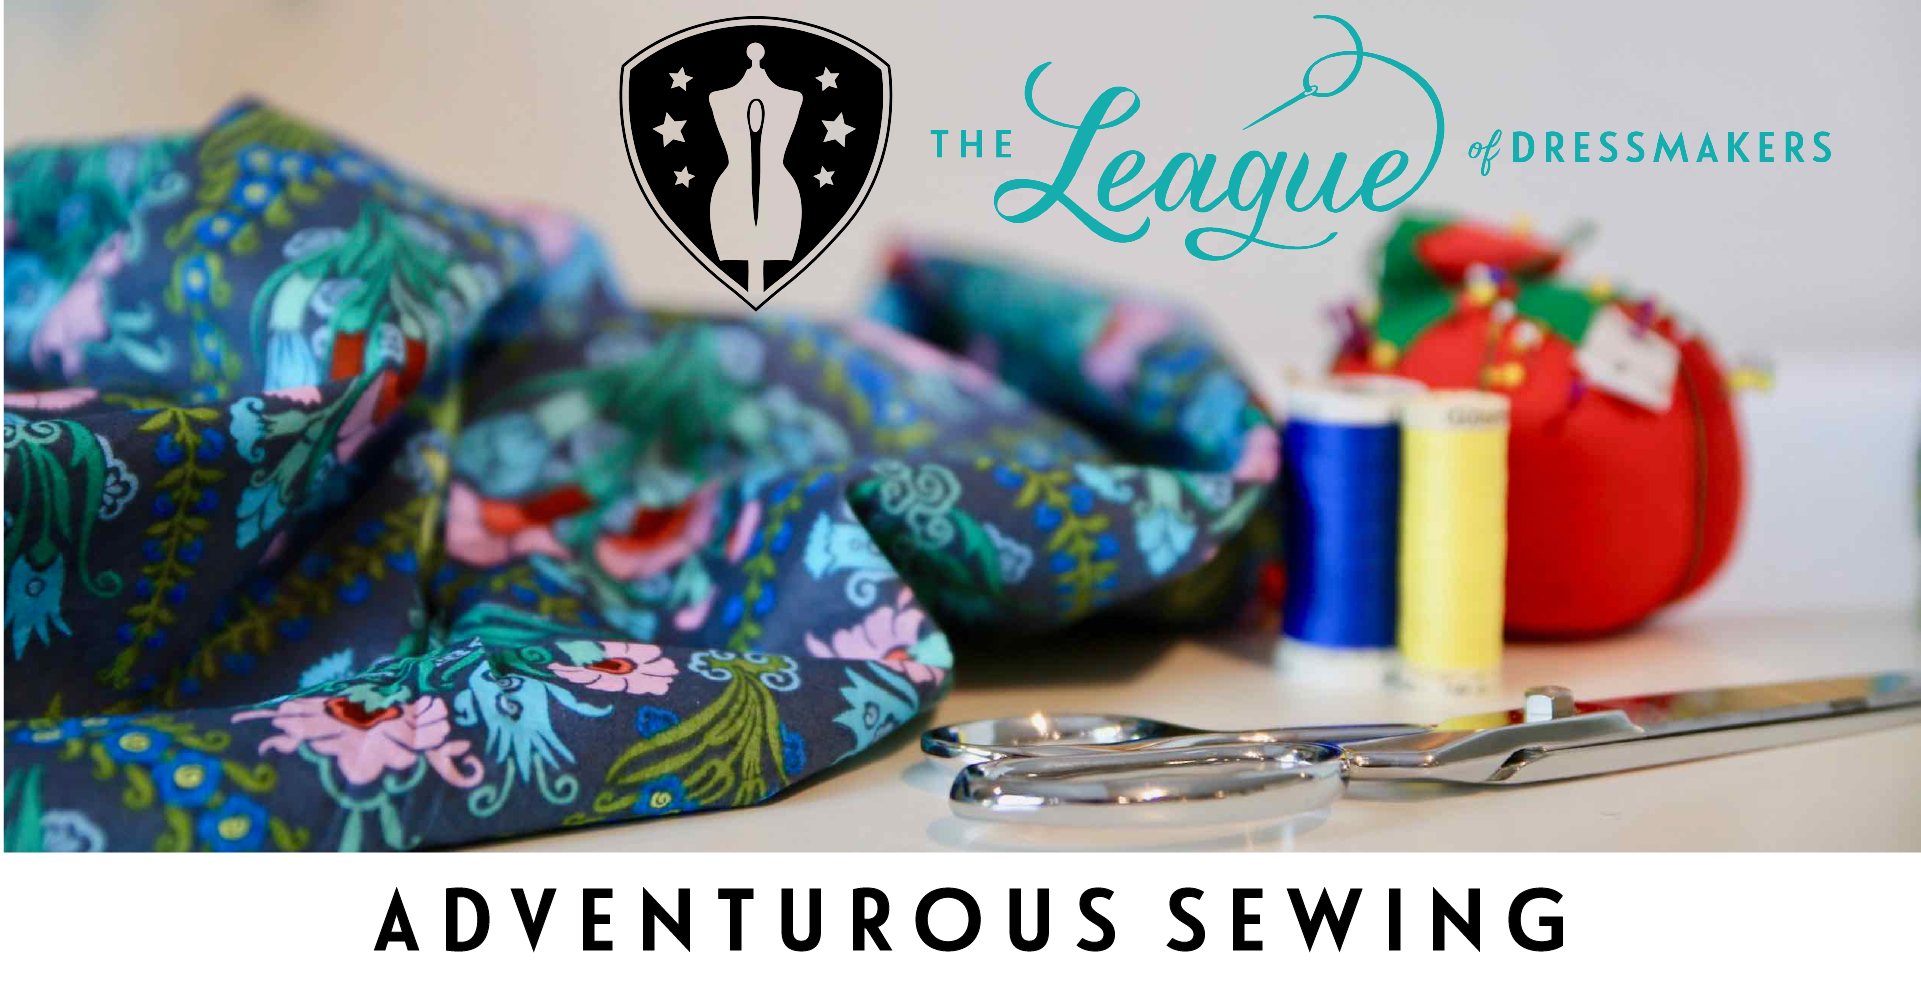 League of Dressmakers Whipstitch club main